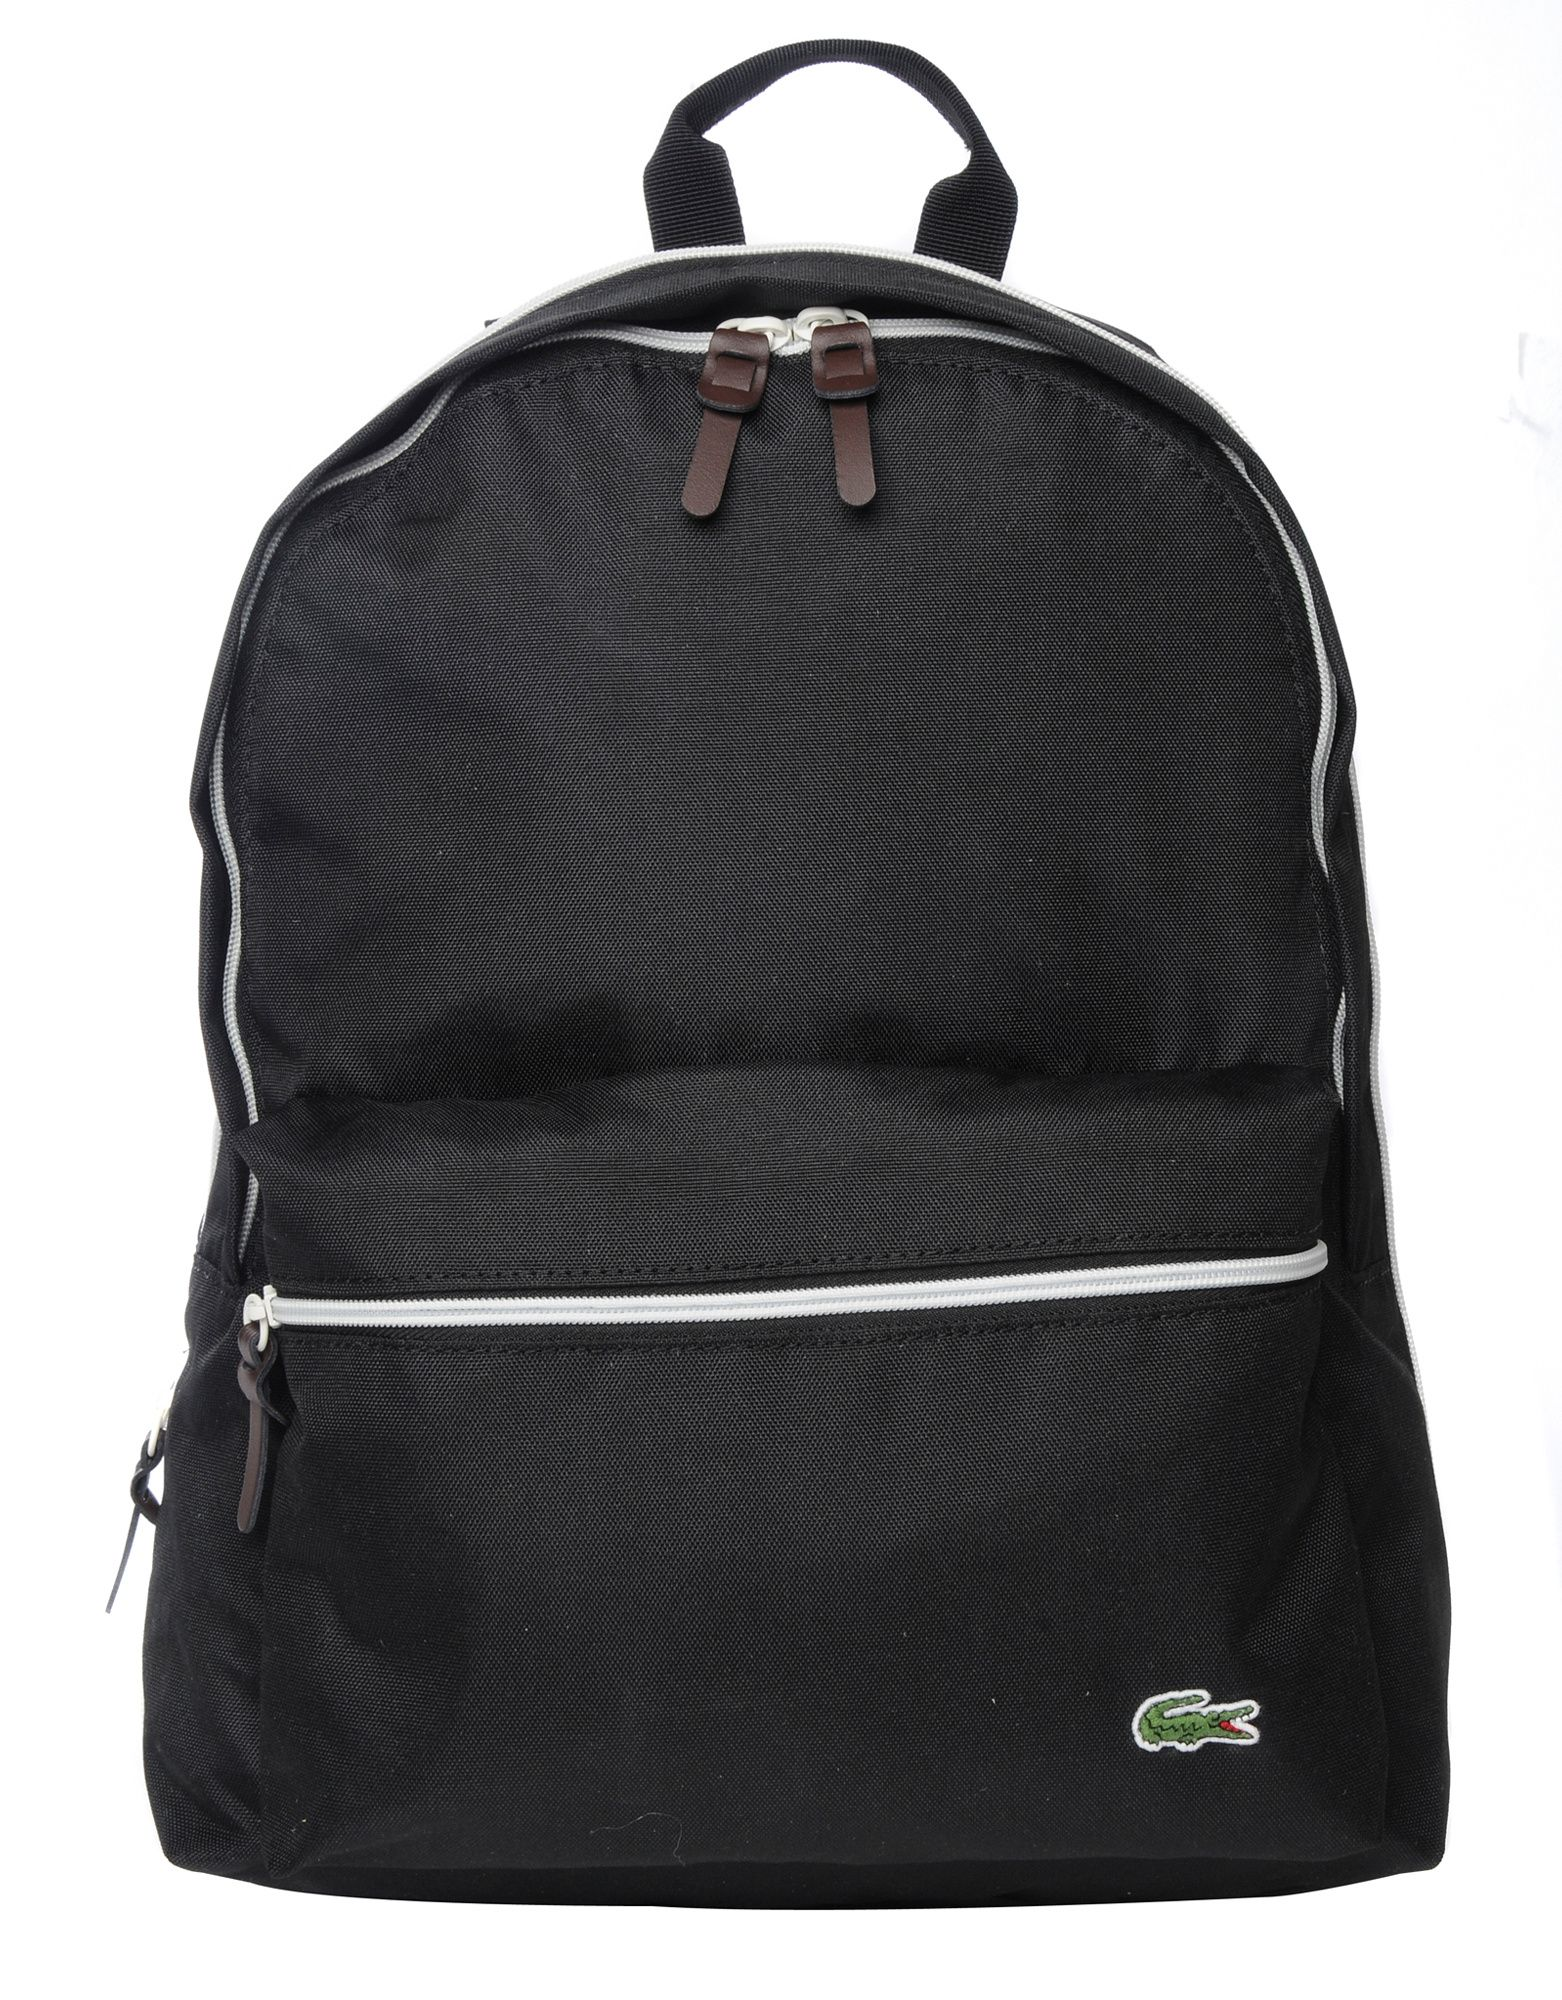 Lacoste Backcroc Backpack